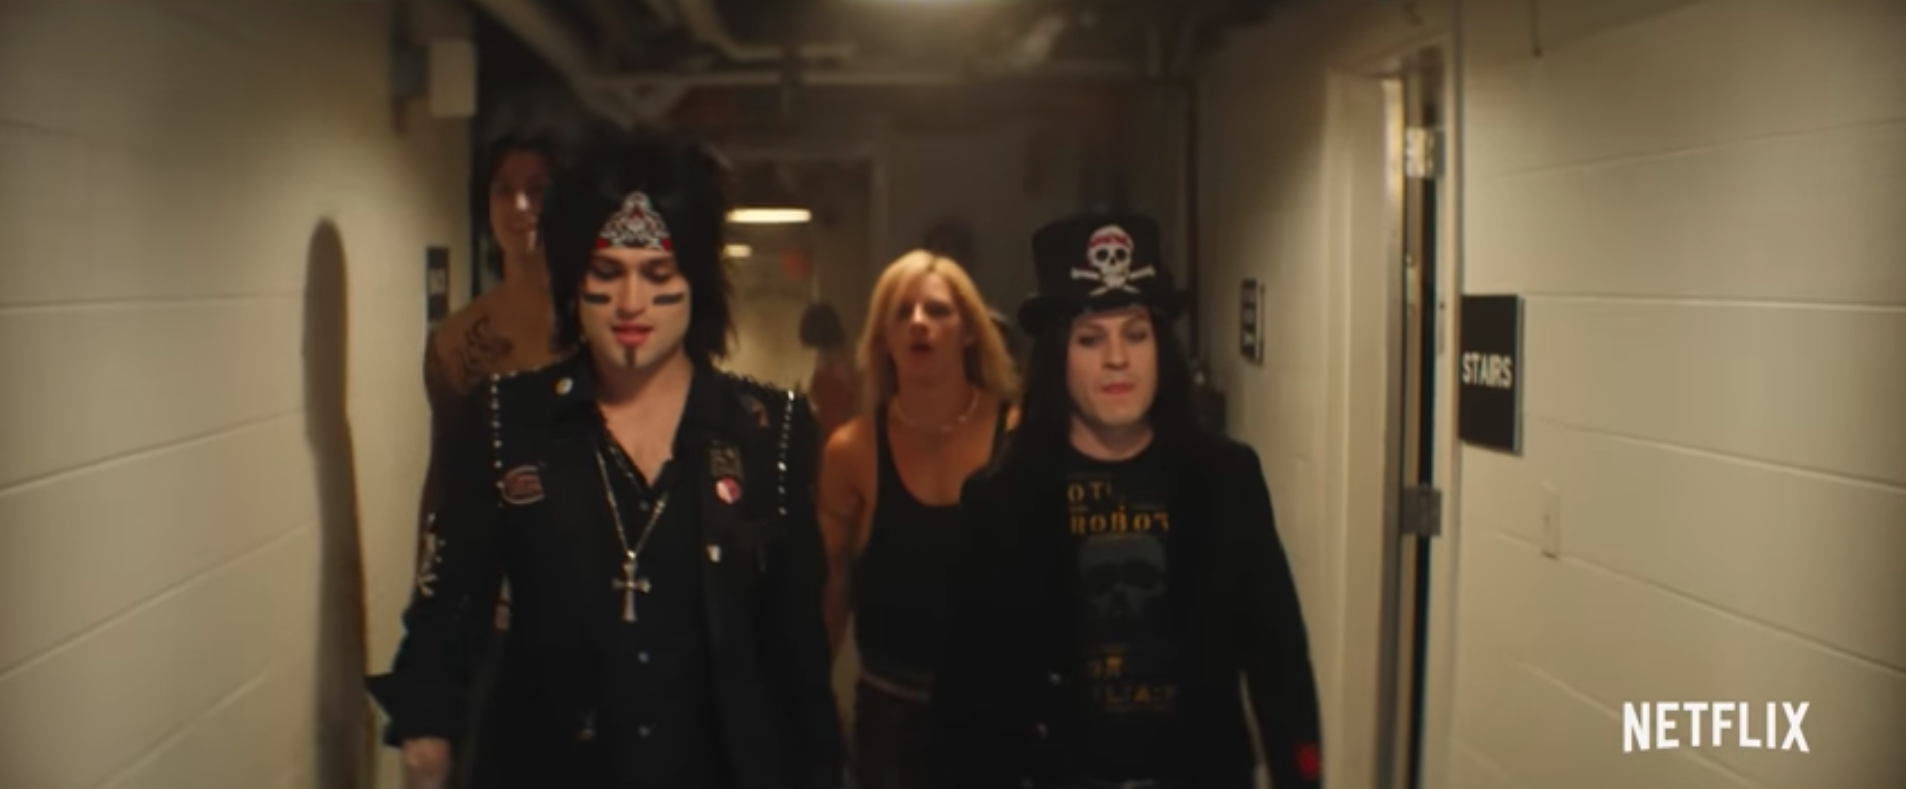 Mötley Crüe Movie 'The Dirt' Trailer Is Out Now: Watch